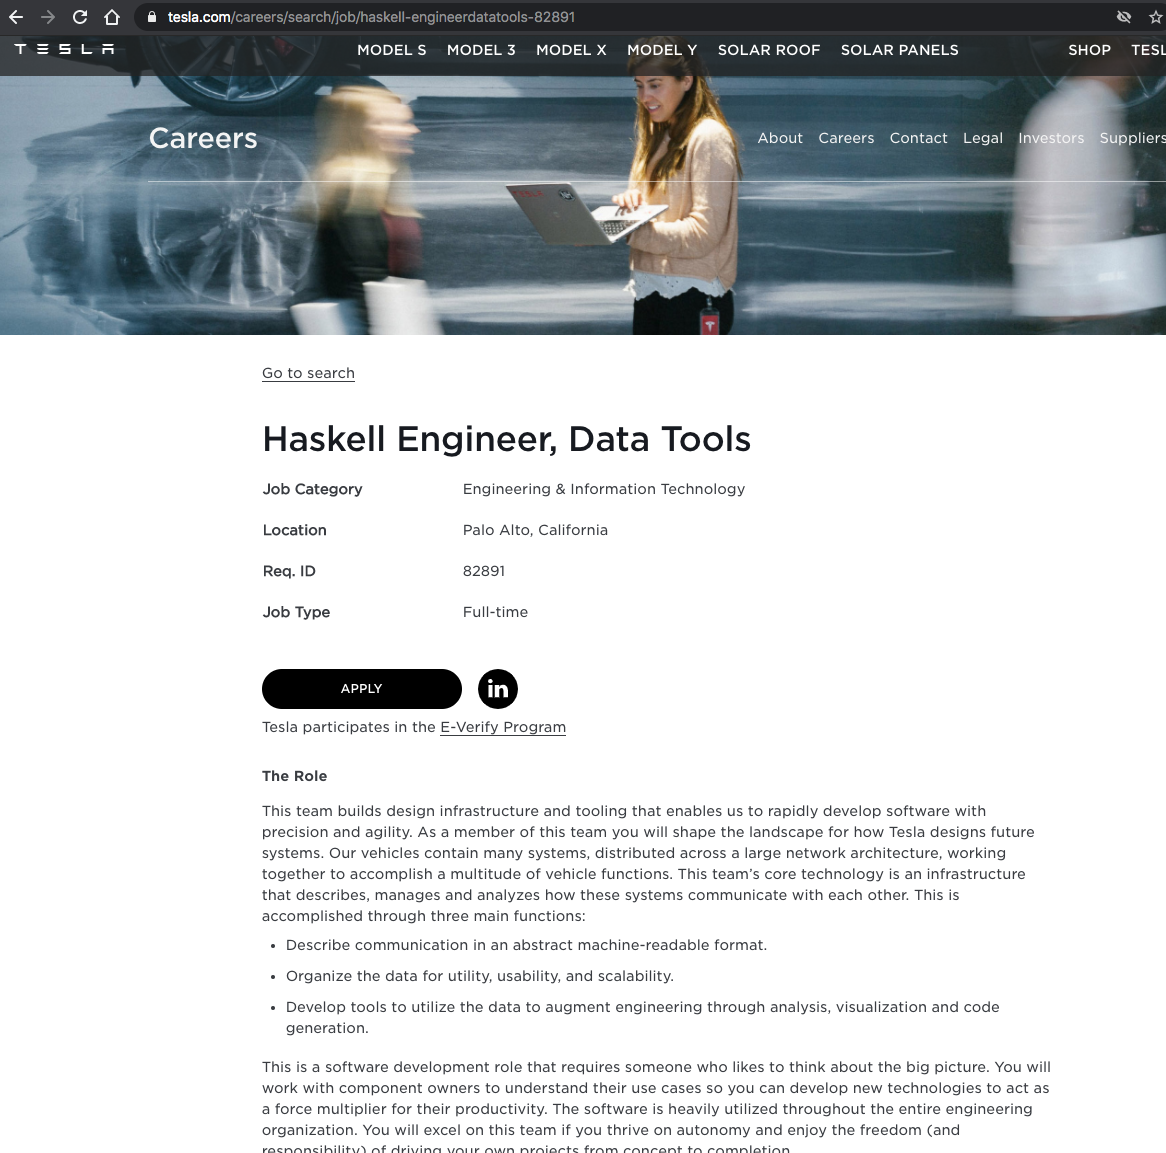 Tesla Seeking to Hire Haskell Engineer to Build Design Infrastructure and Tooling